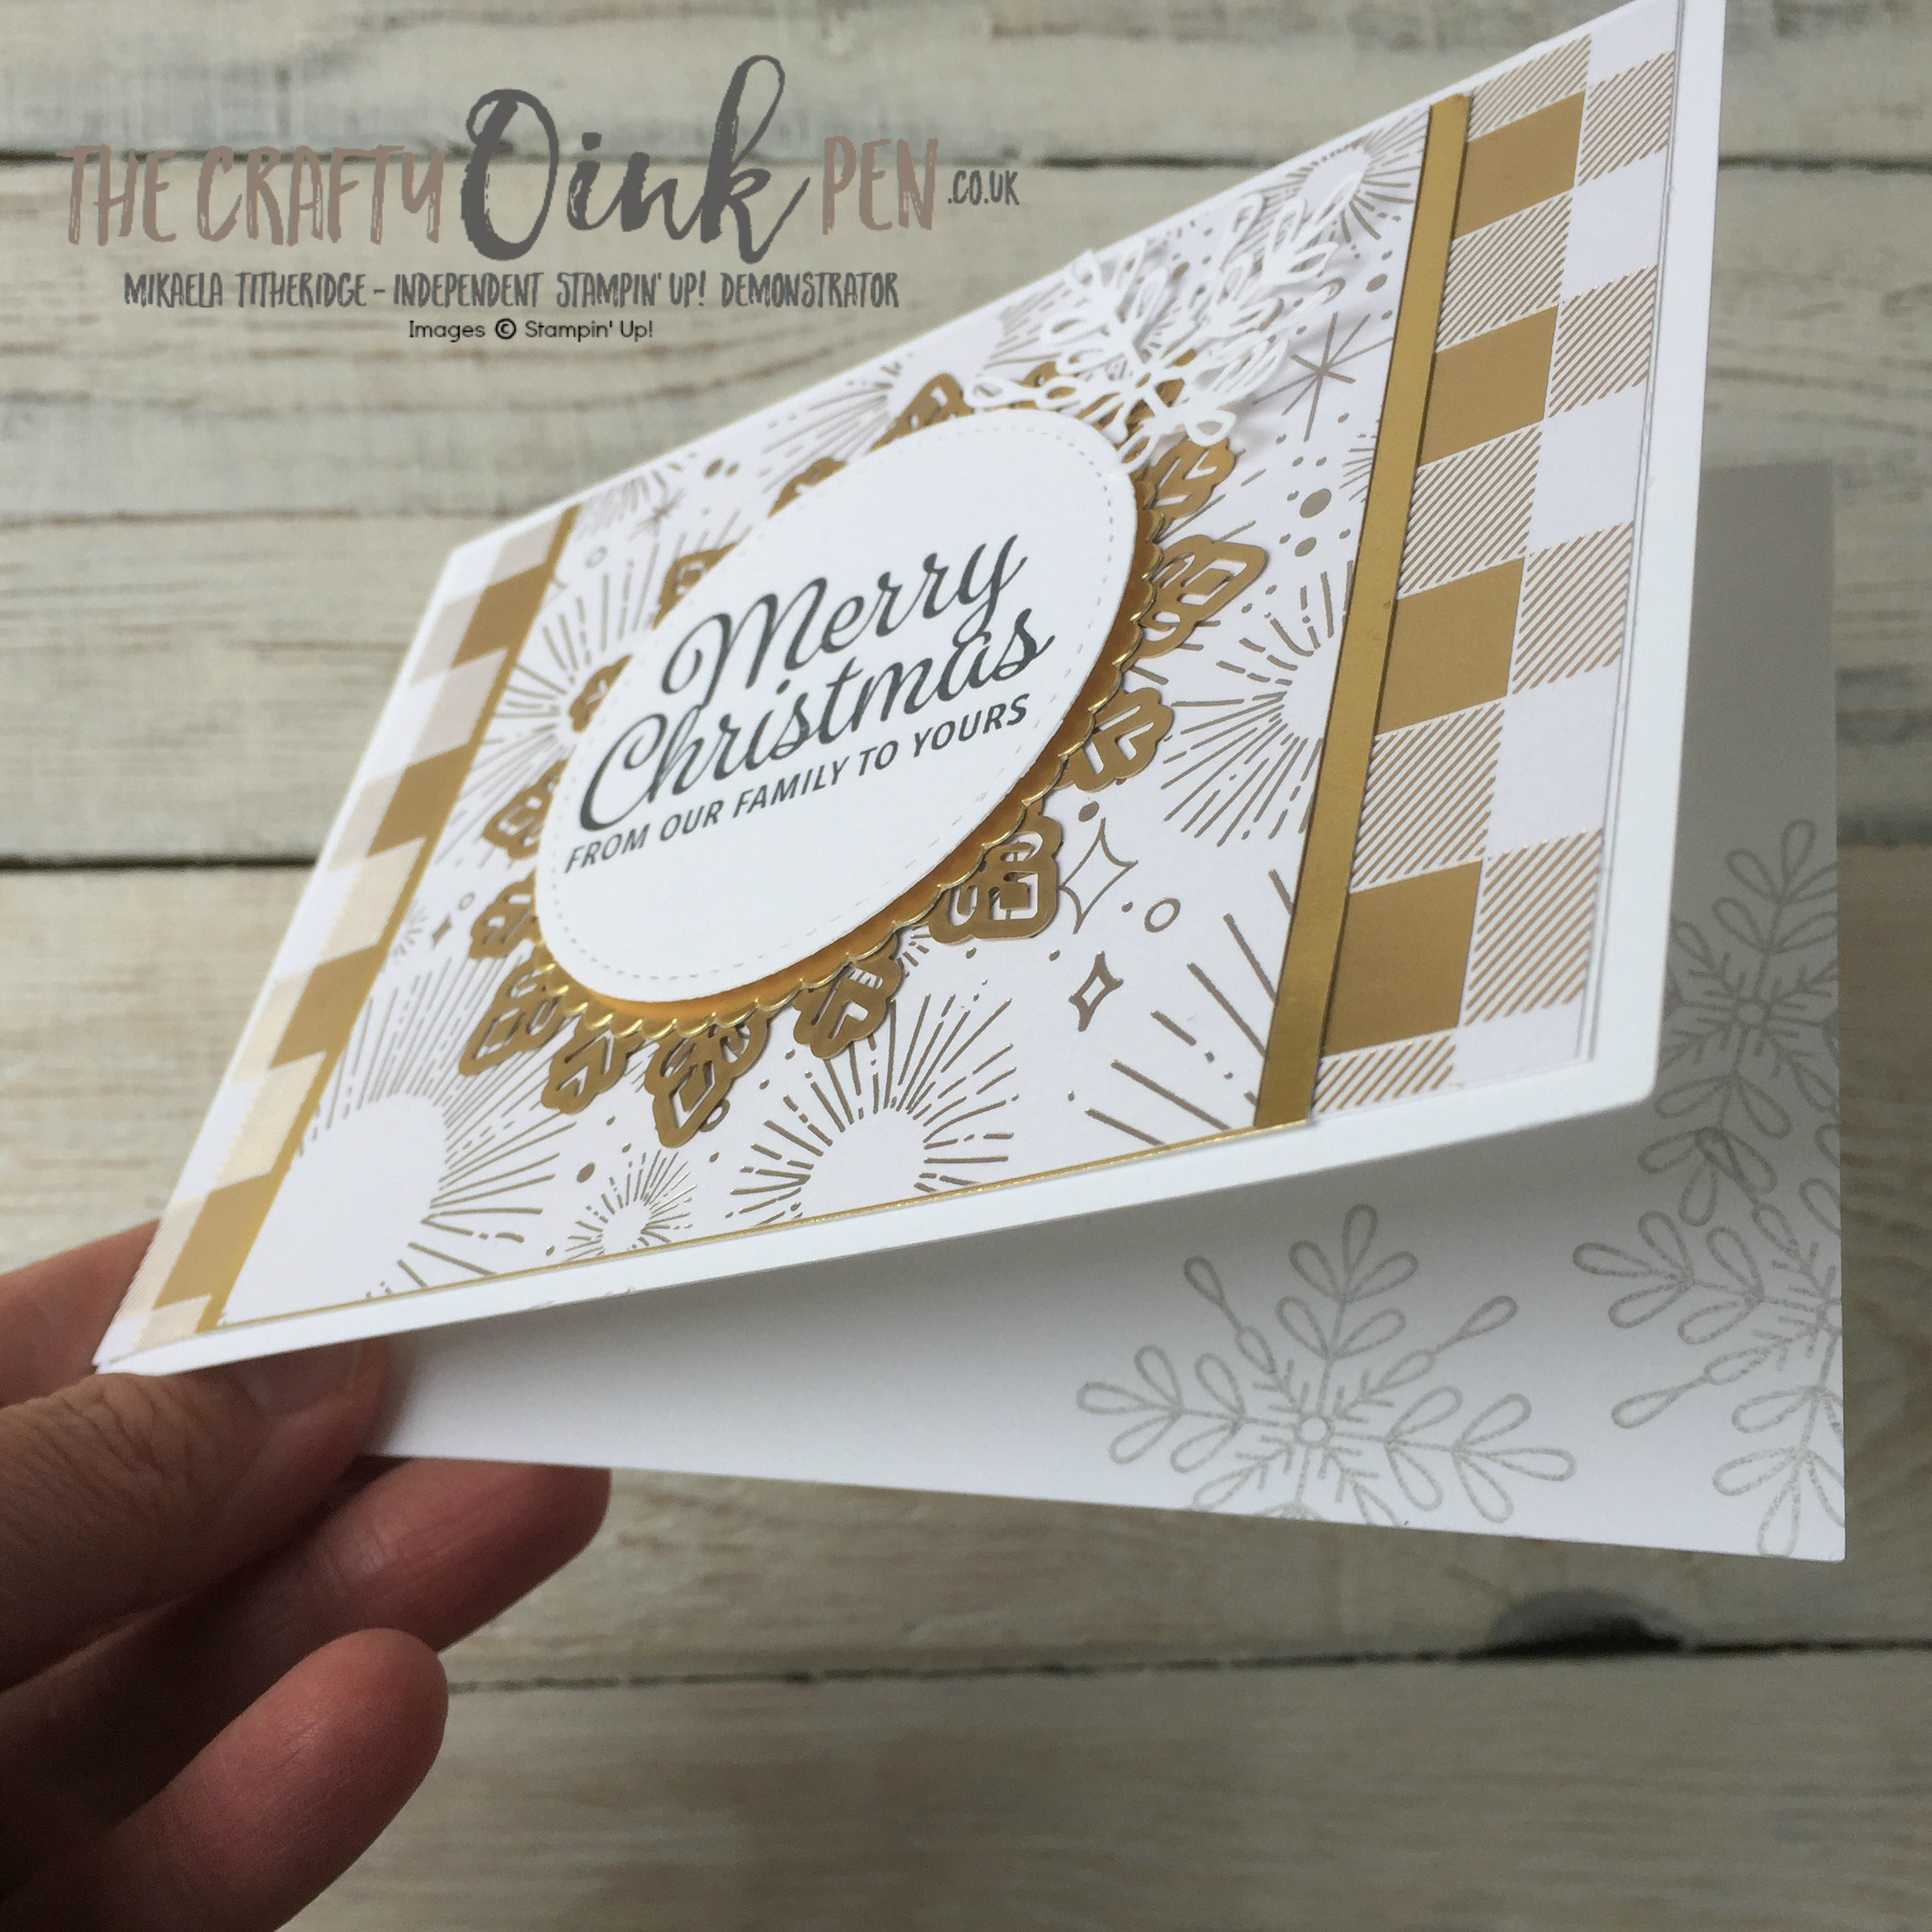 #6 UK Stampin' Up! Demonstrator, The Crafty oINK Pen brings you Christmas cards a plenty